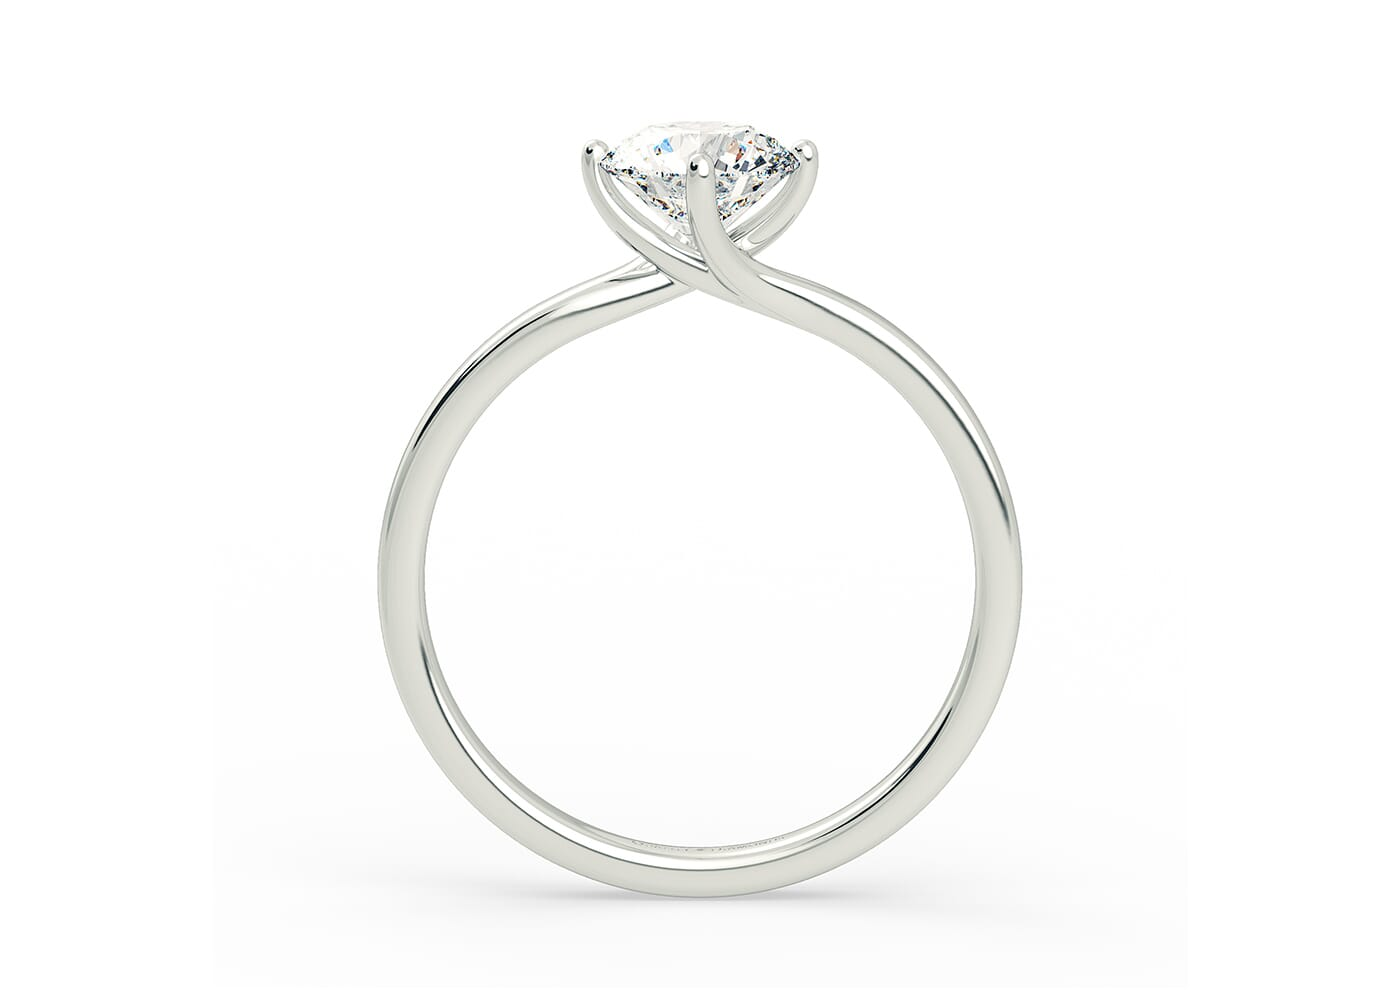 Abbracio Contemporary Diamond Engagement Ring